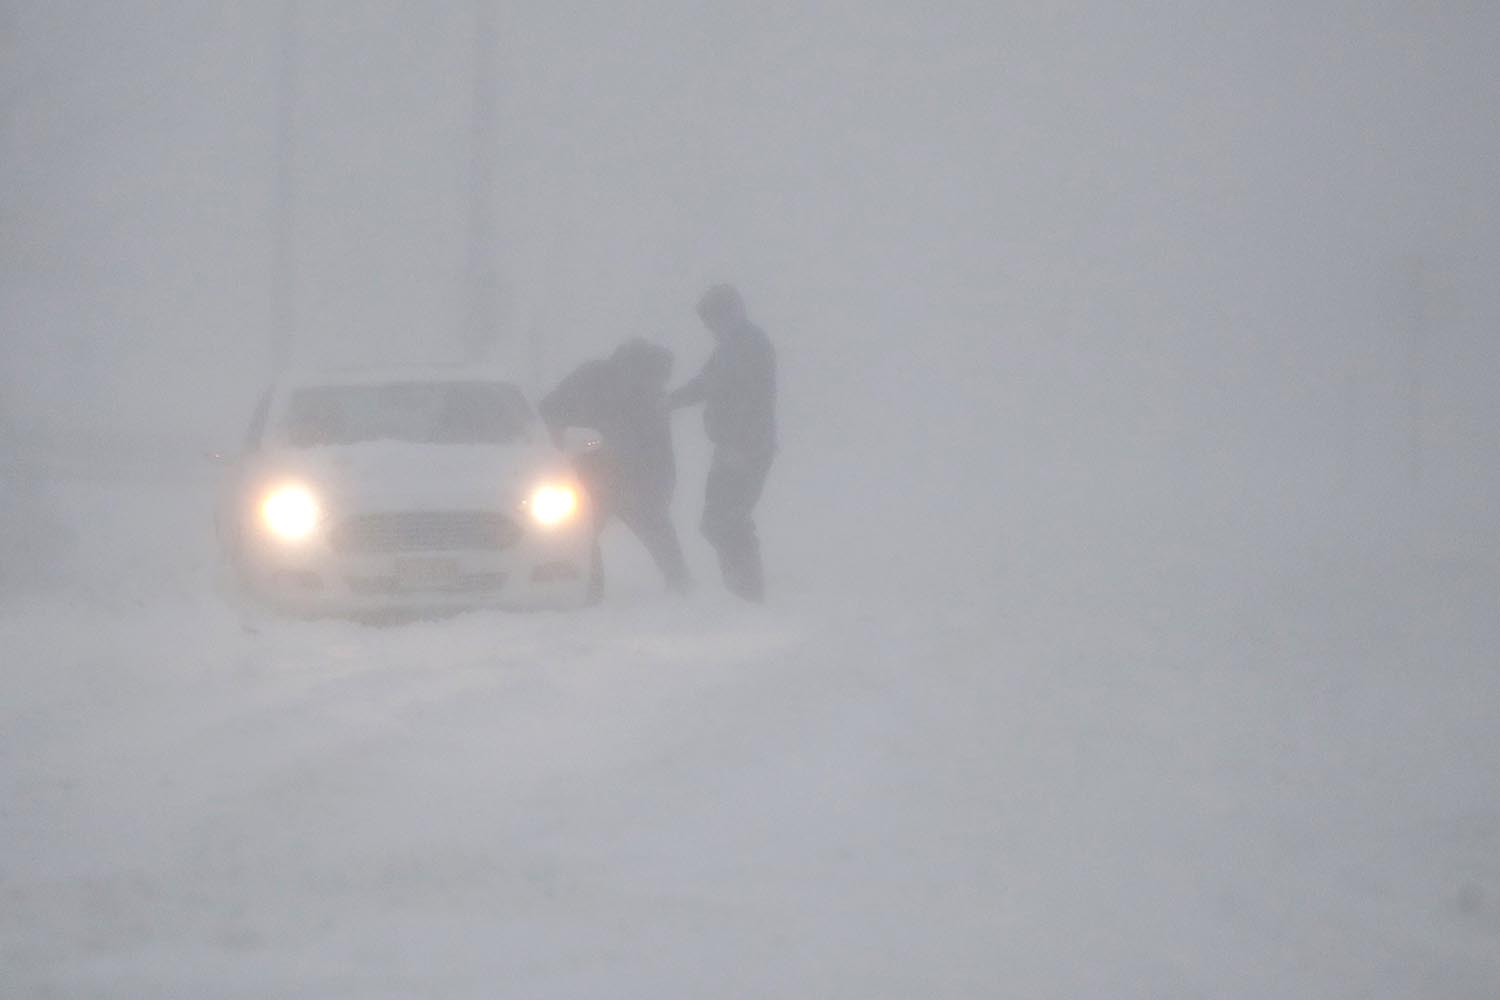 "<div class=""meta image-caption""><div class=""origin-logo origin-image ap""><span>AP</span></div><span class=""caption-text"">People try to clear snow off after being stuck on a snowbank on the Garden State Parkway in whiteout conditions during a snowstorm, Thursday, Jan. 4, 2018, in Tinton Falls, N.J. (AP Photo/Julio Cortez)</span></div>"